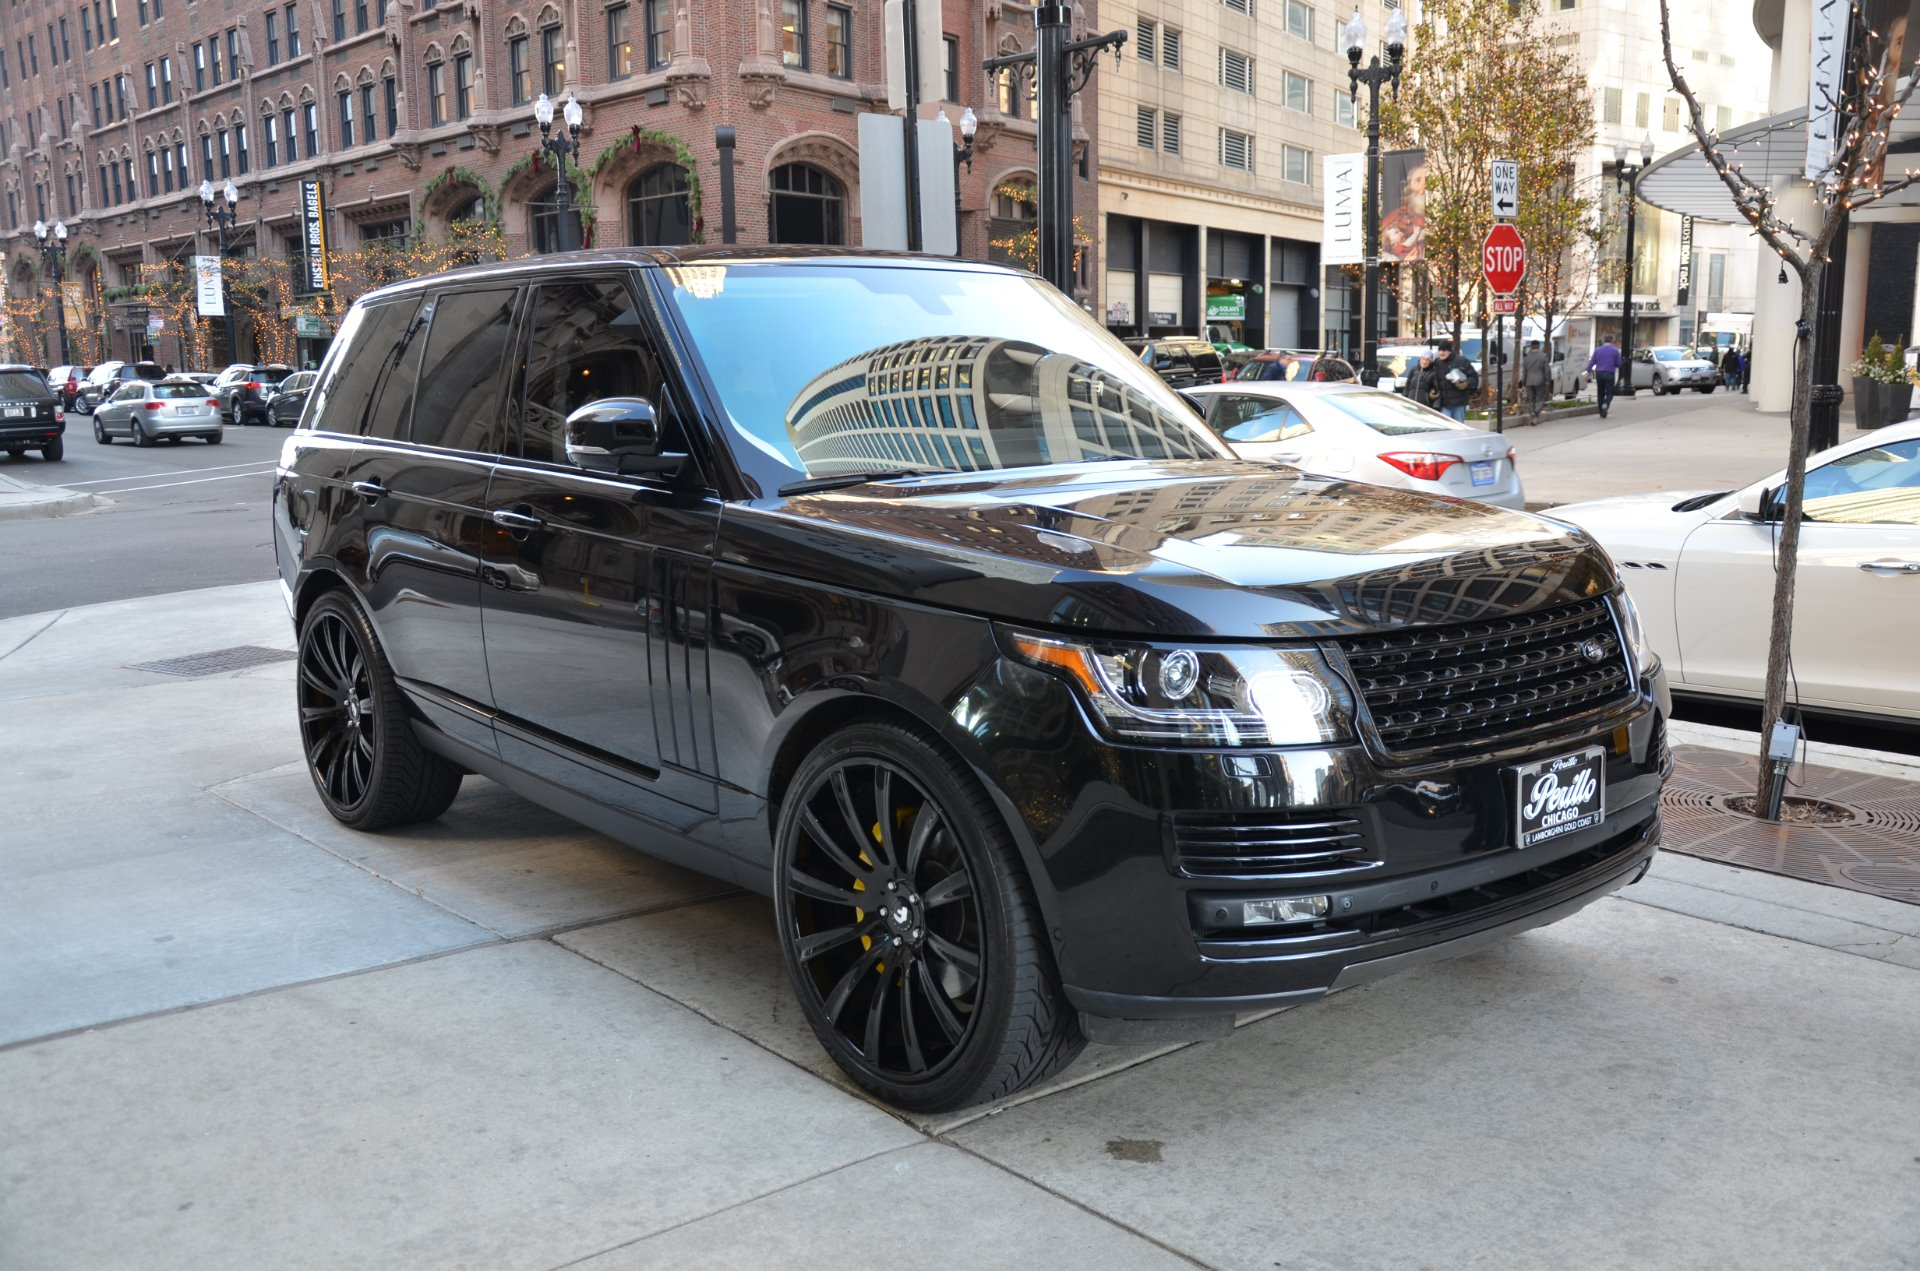 2013 Land Rover Range Rover Supercharged Stock GC1663AA for sale